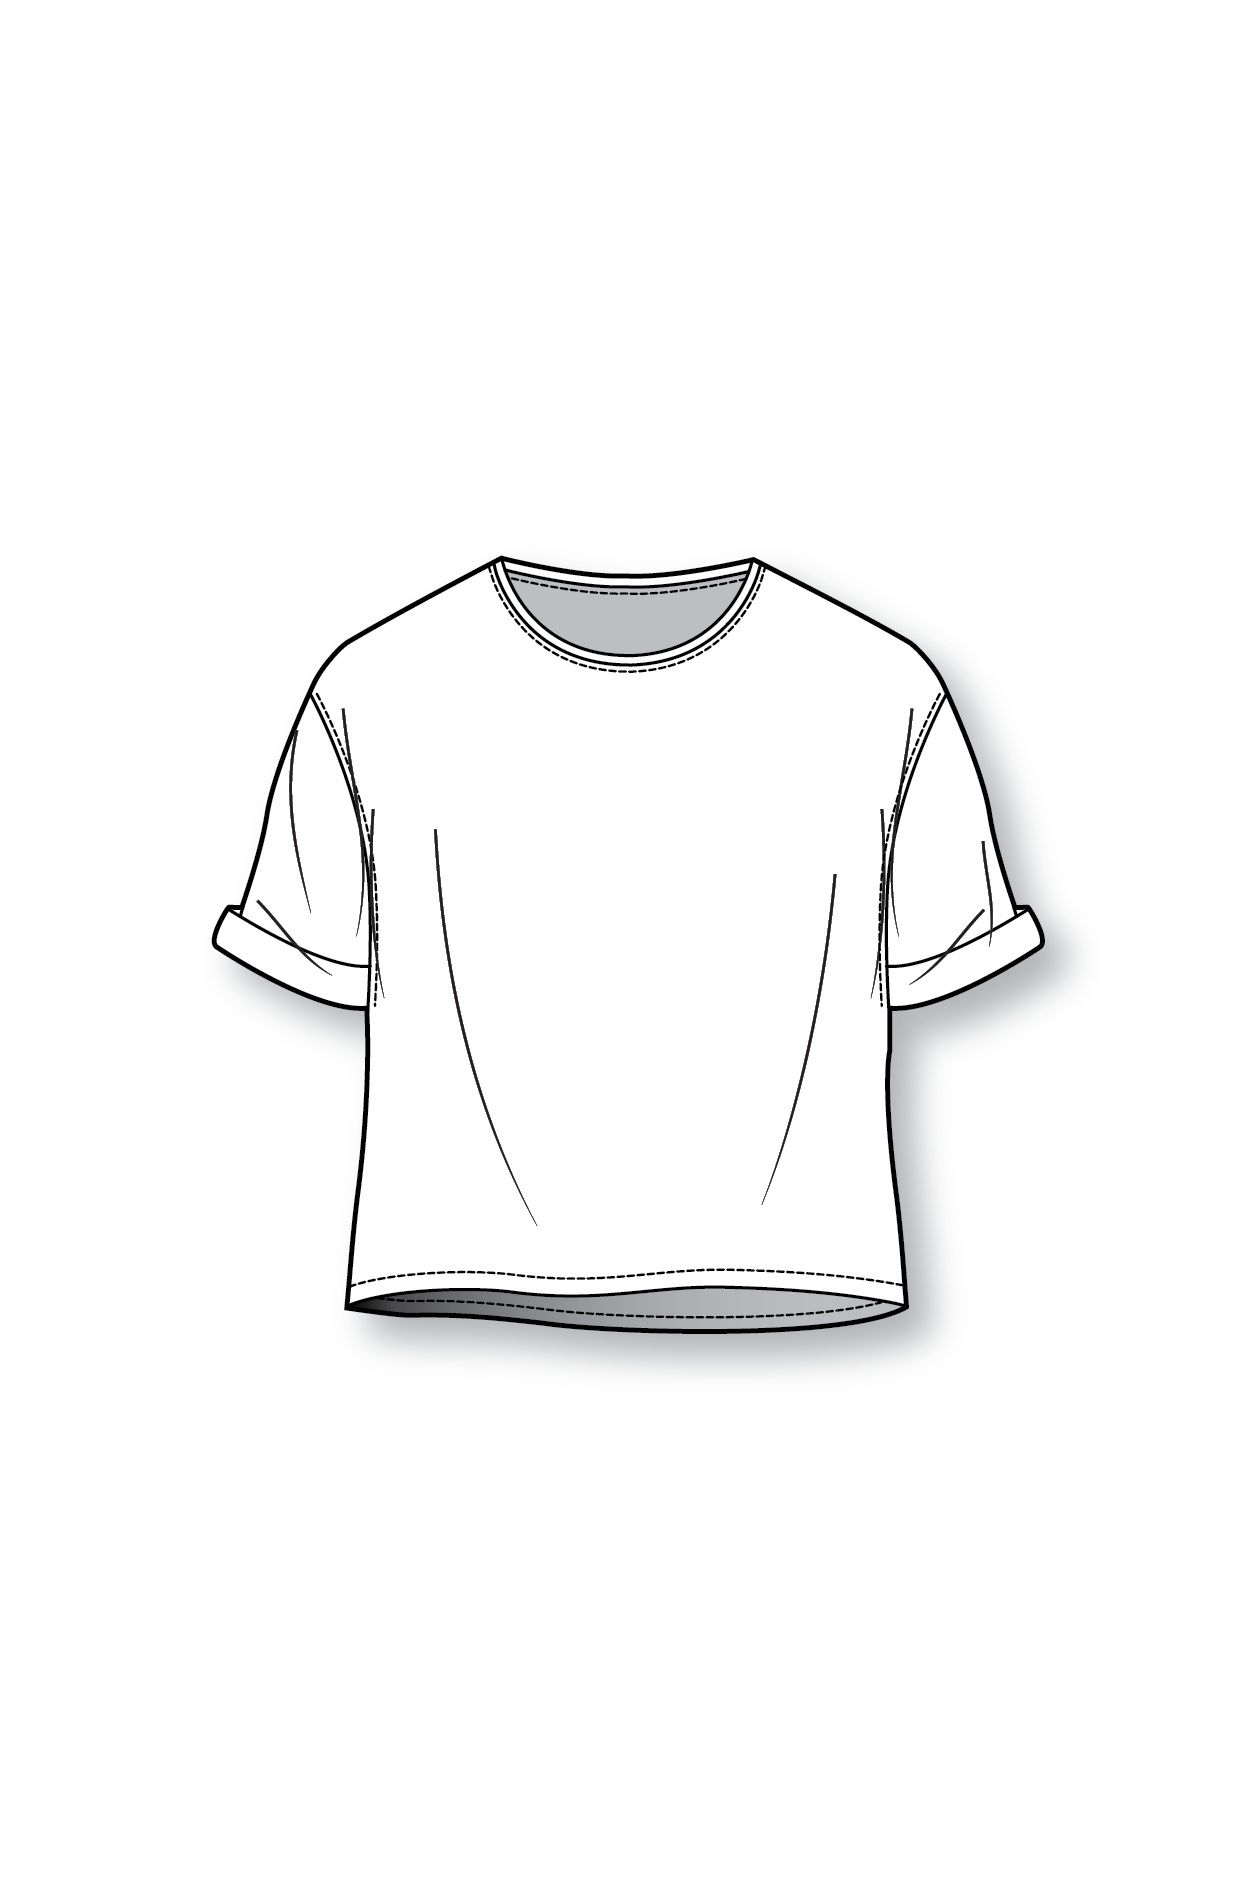 image black and white library Drawing shirts sketch. Shirt template at paintingvalley